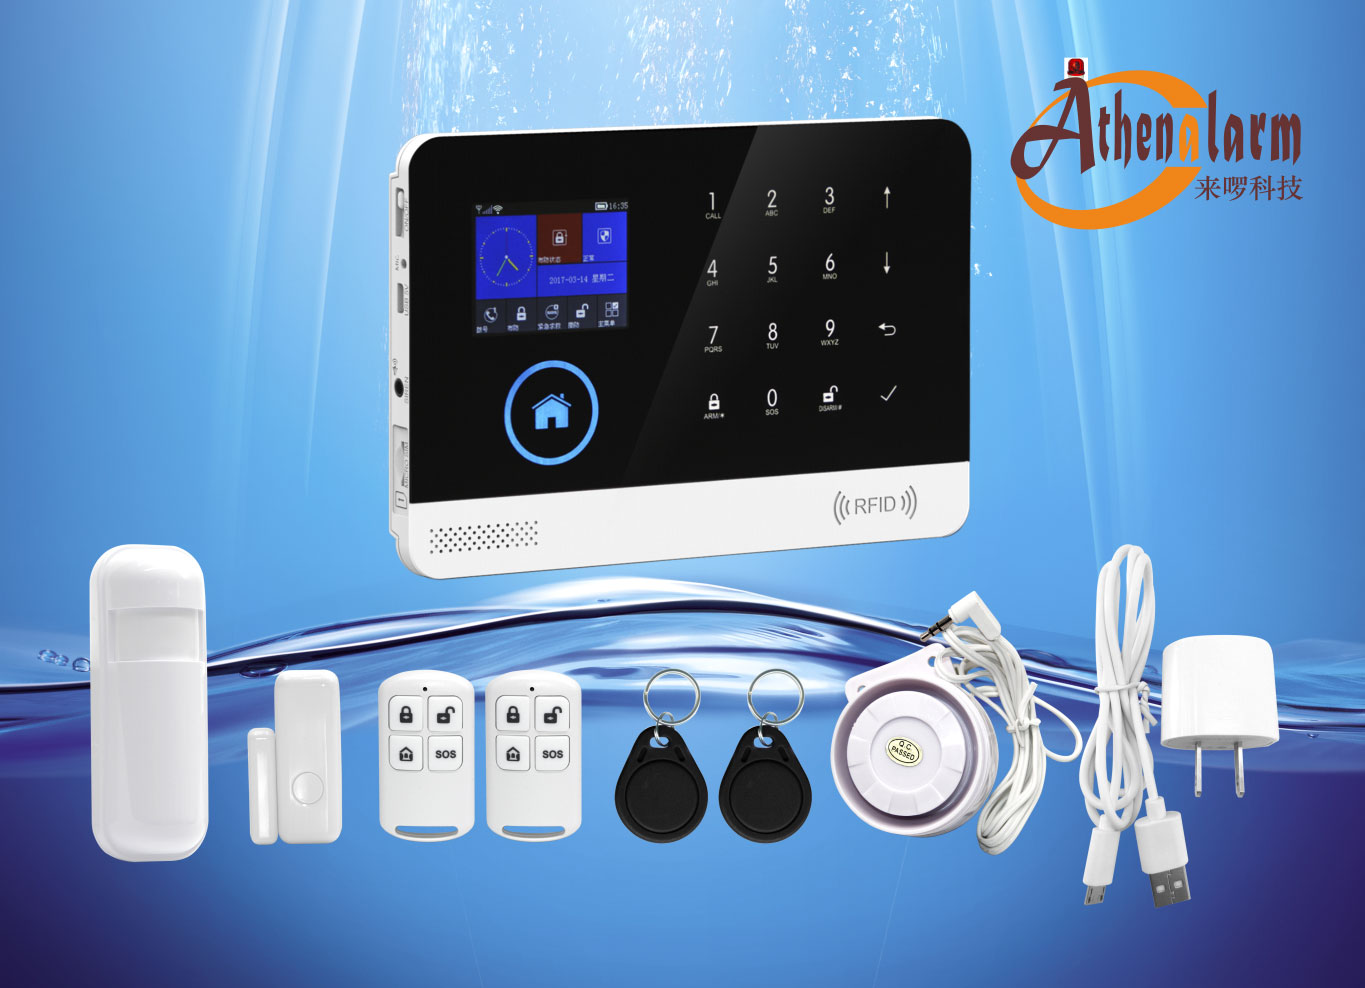 GPRS WIFI Dual Network Alarm Host 1